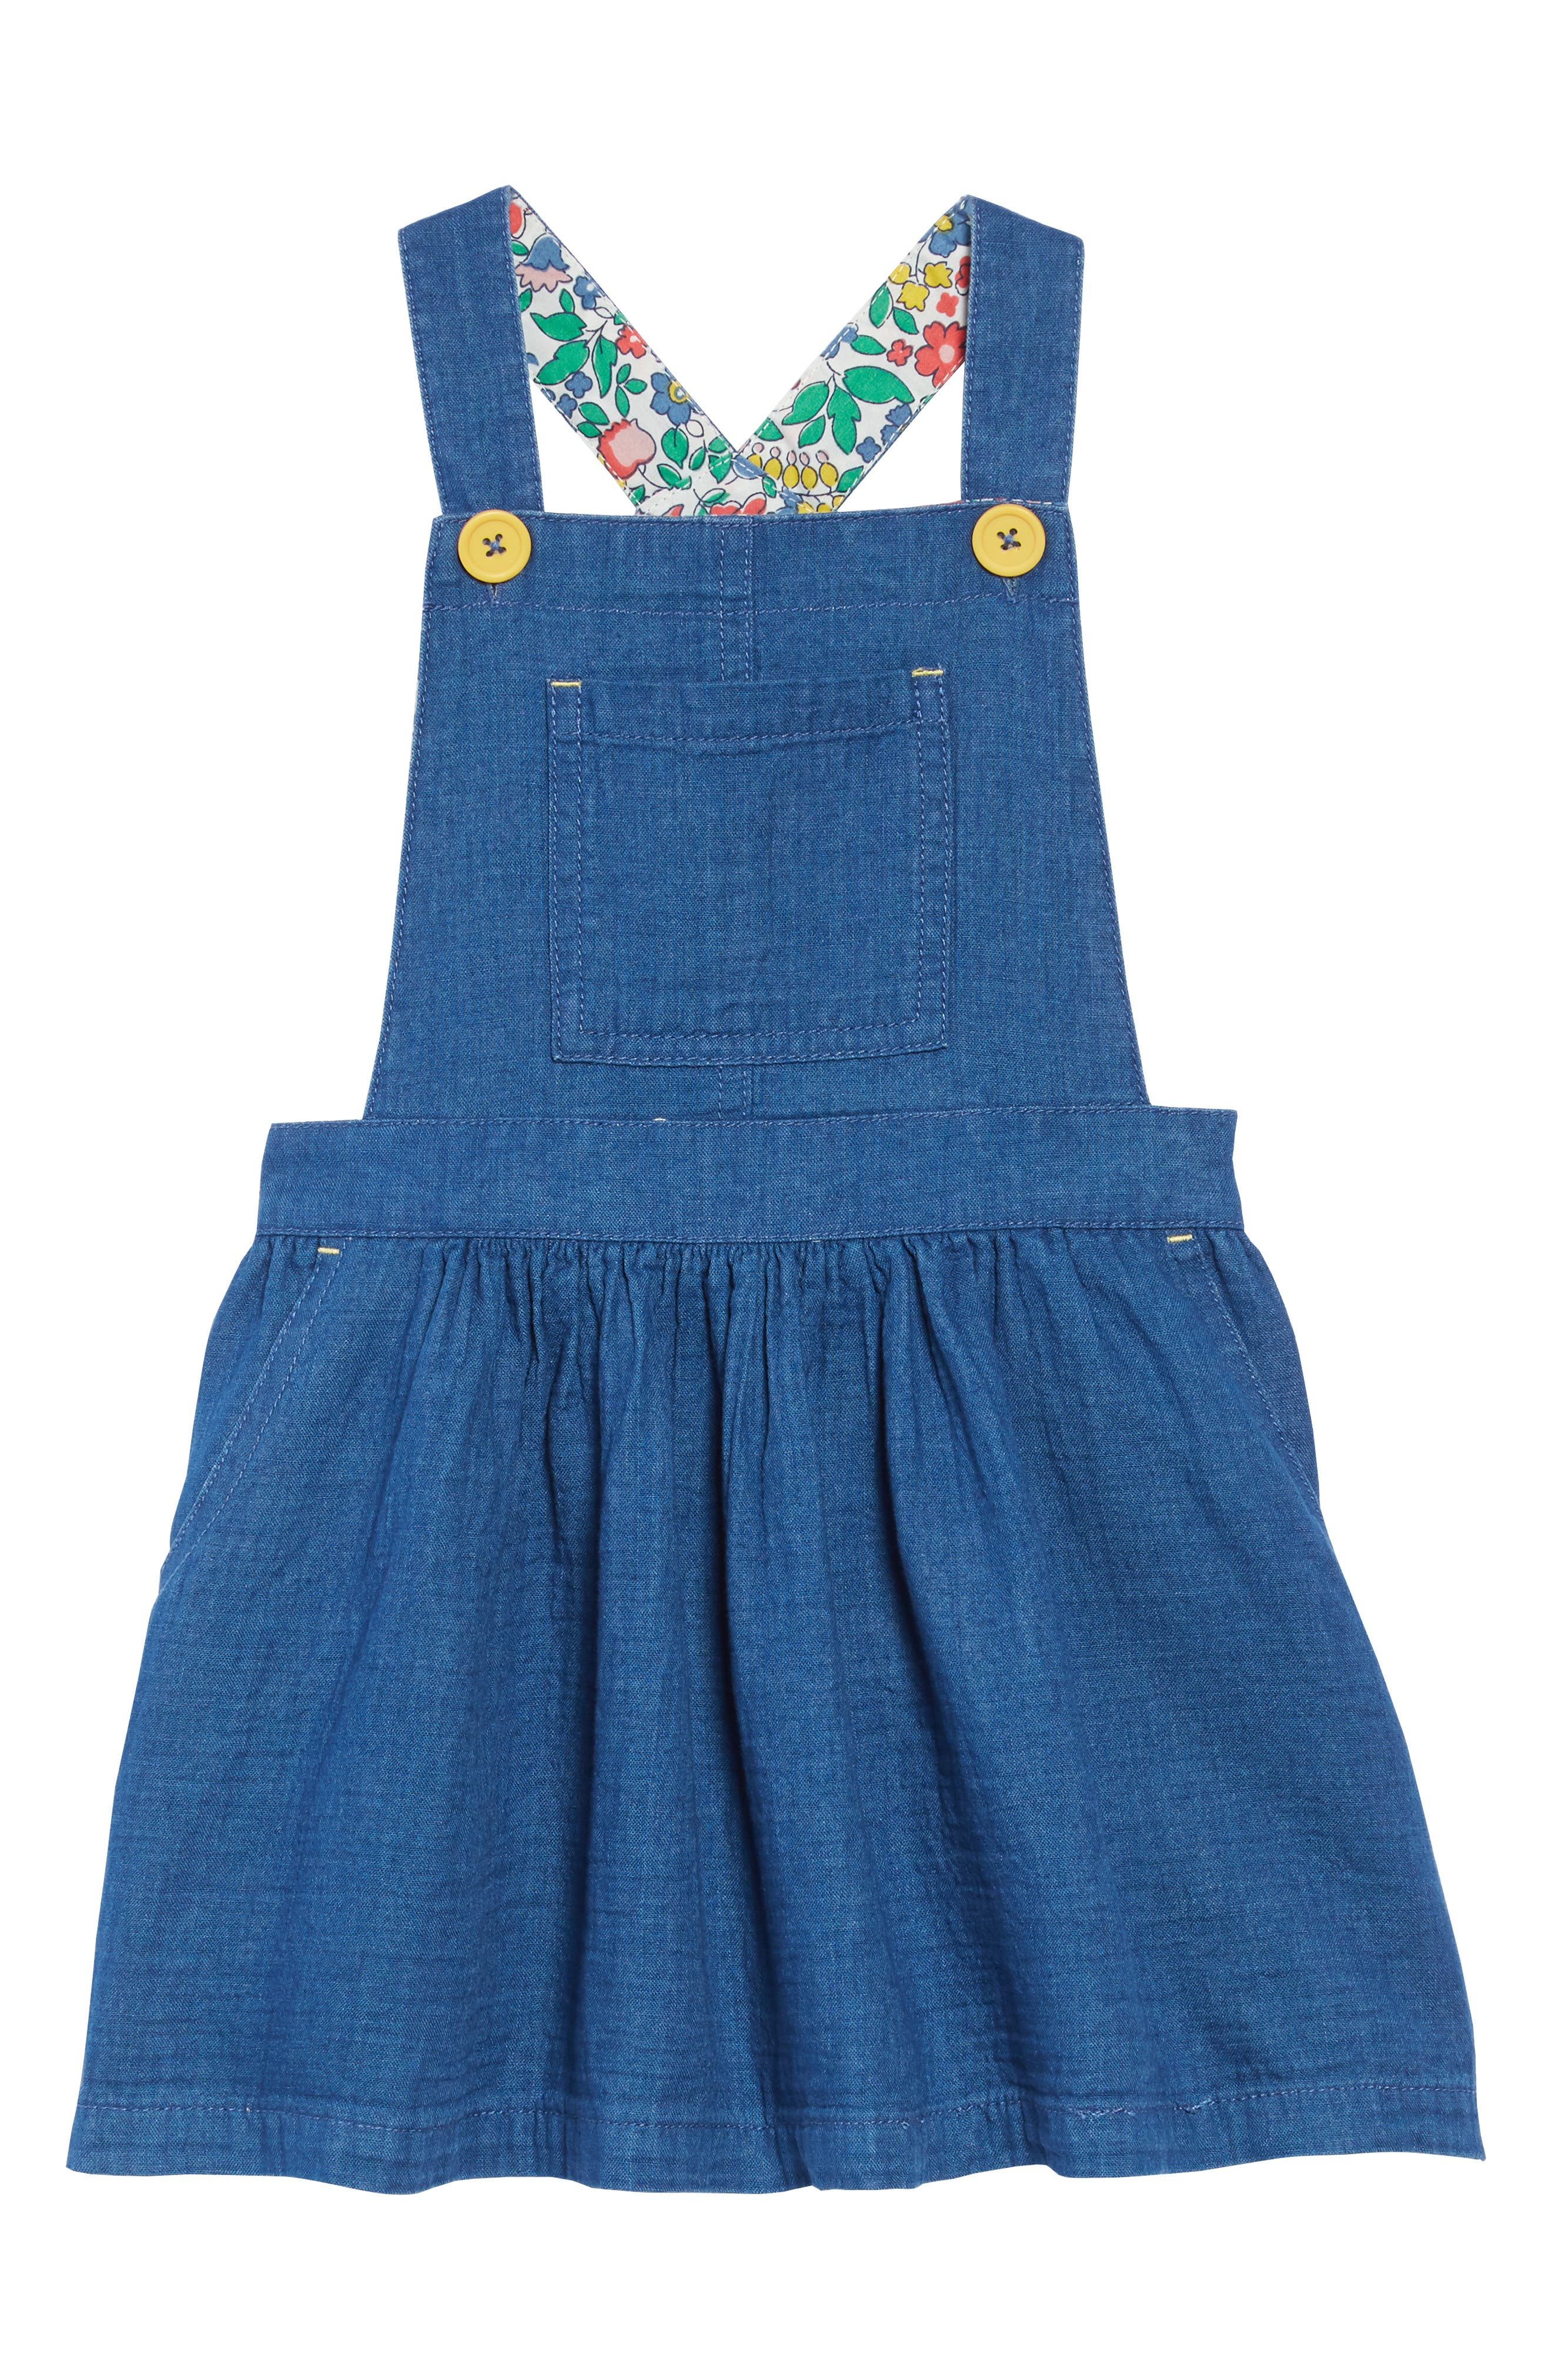 Toddler Girls Mini Boden Dungaree Overall Dress Size 34Y  Blue